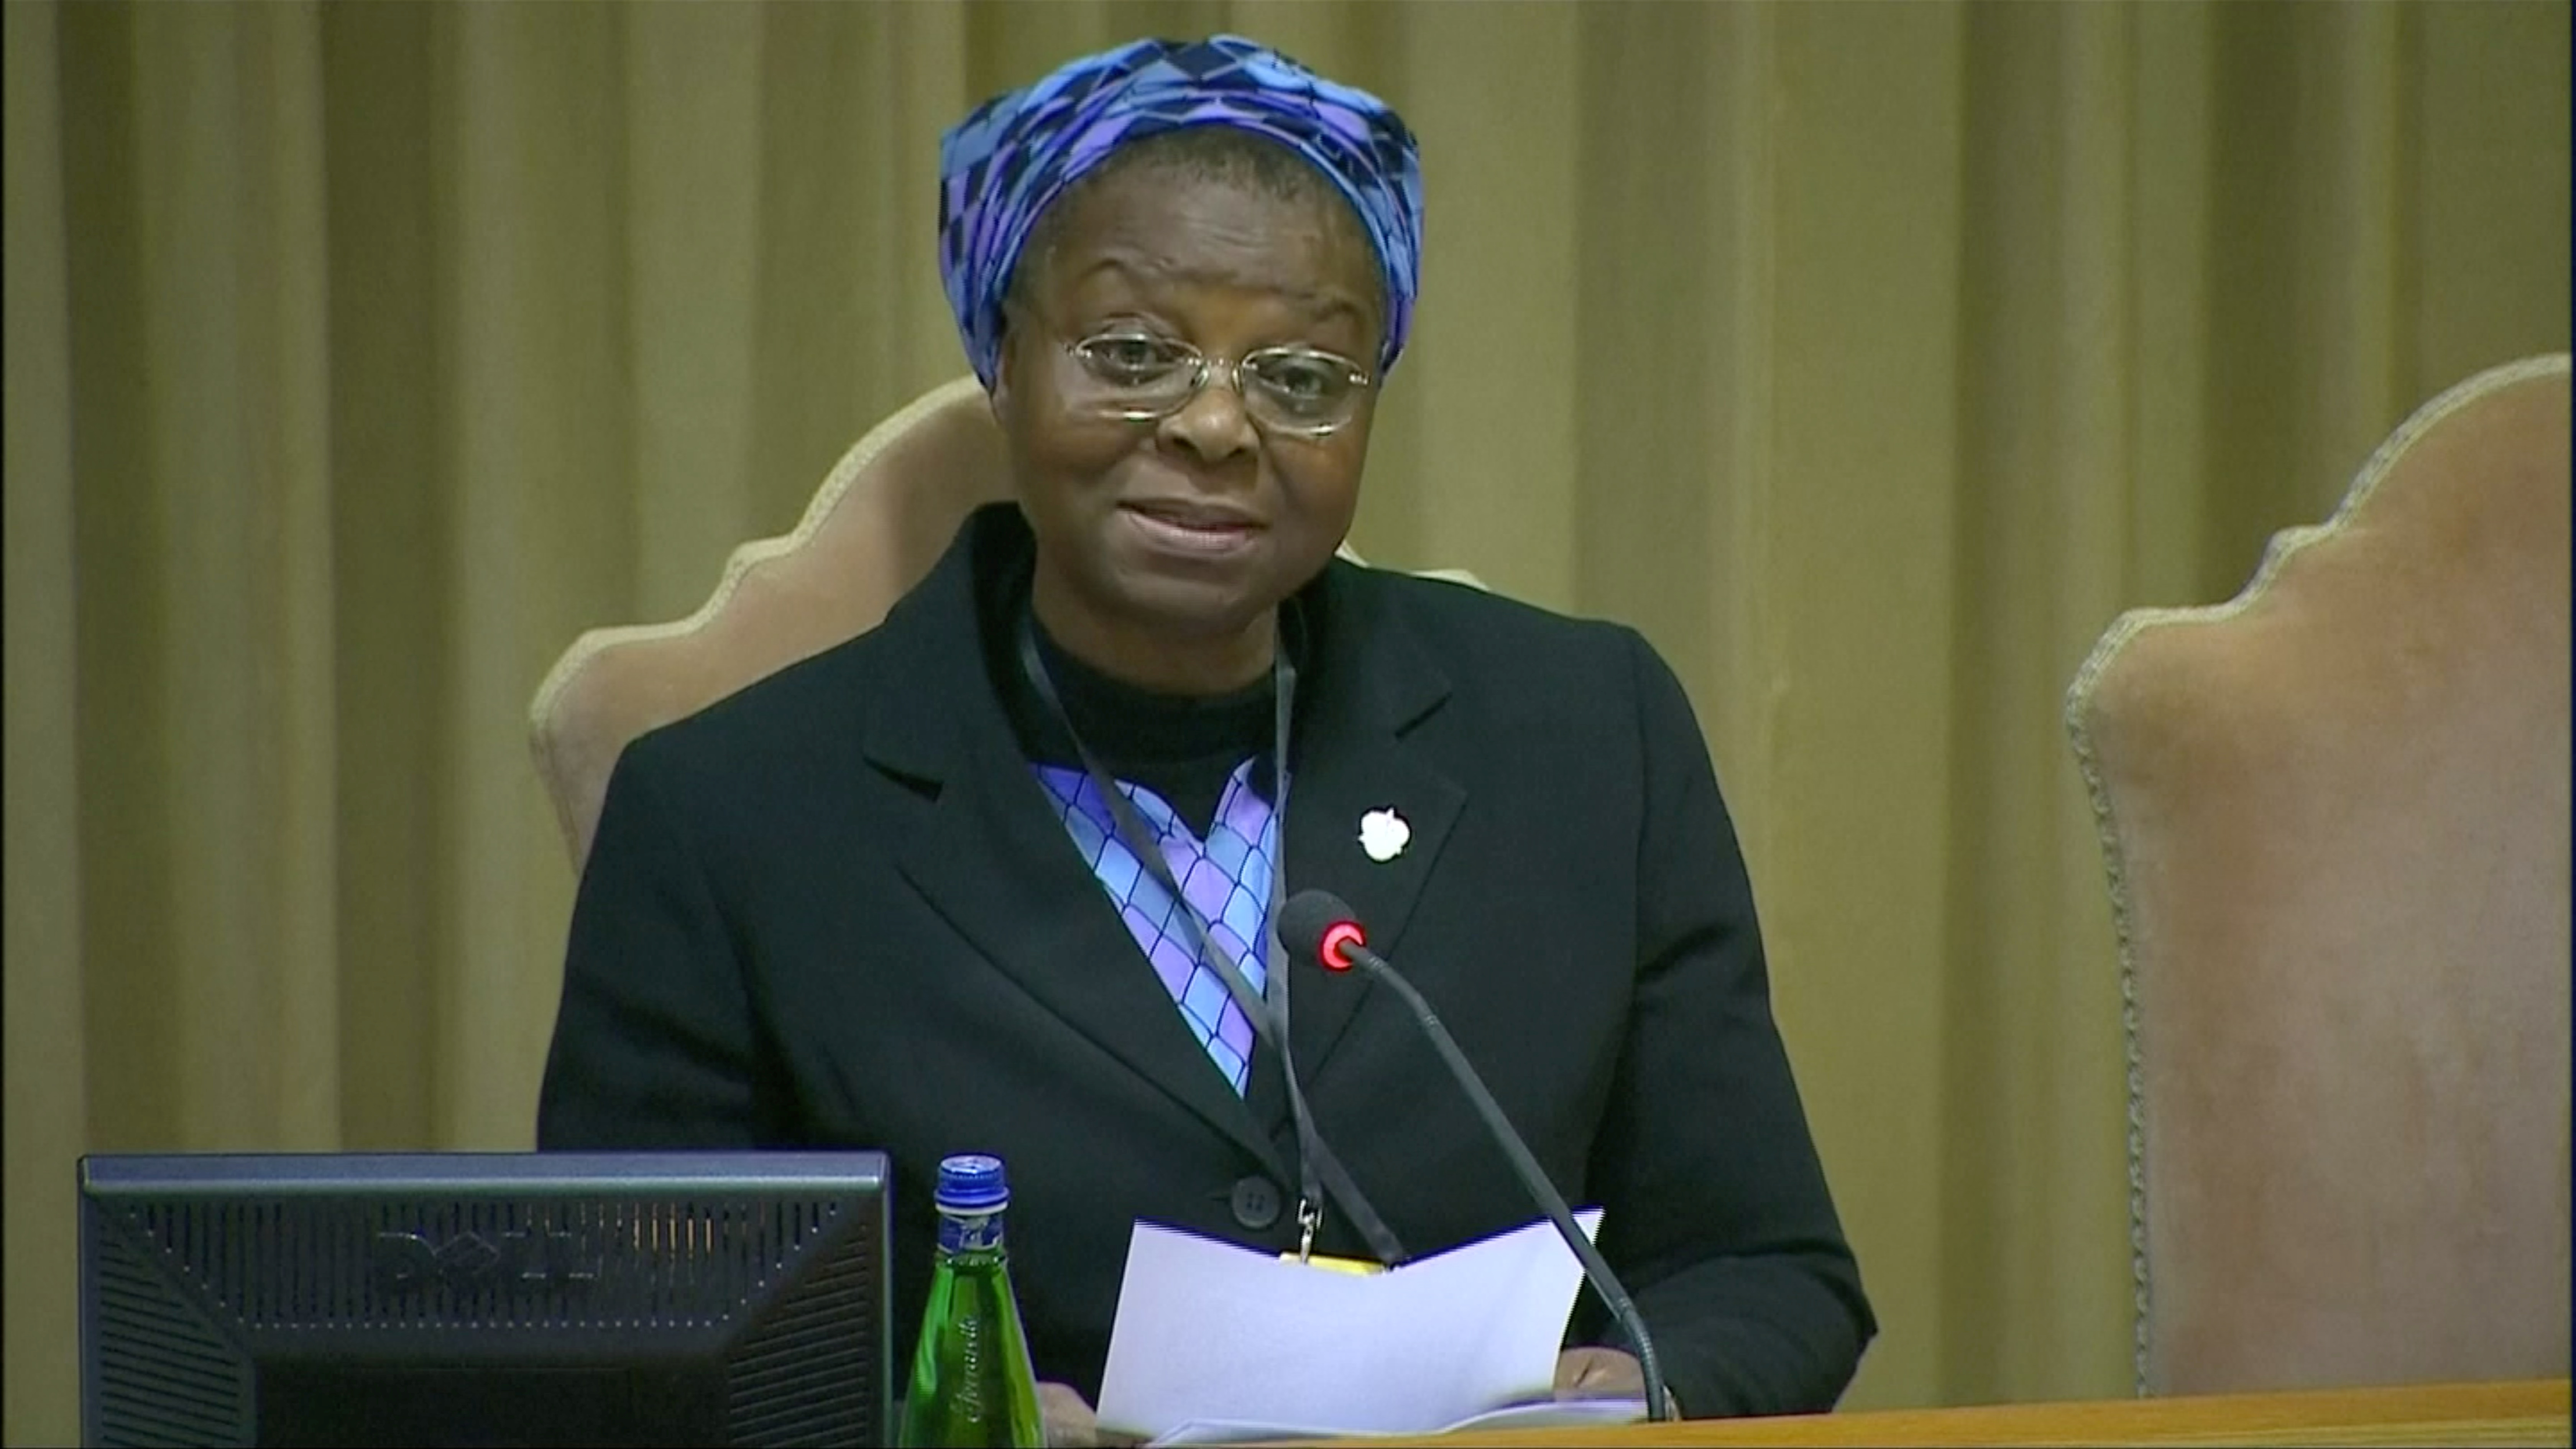 Sister Veronica Openibo speaks during the third day of the four-day meeting on the global sexual abuse crisis, at the Vatican, February 23, 2019, in this screen grab taken from video.